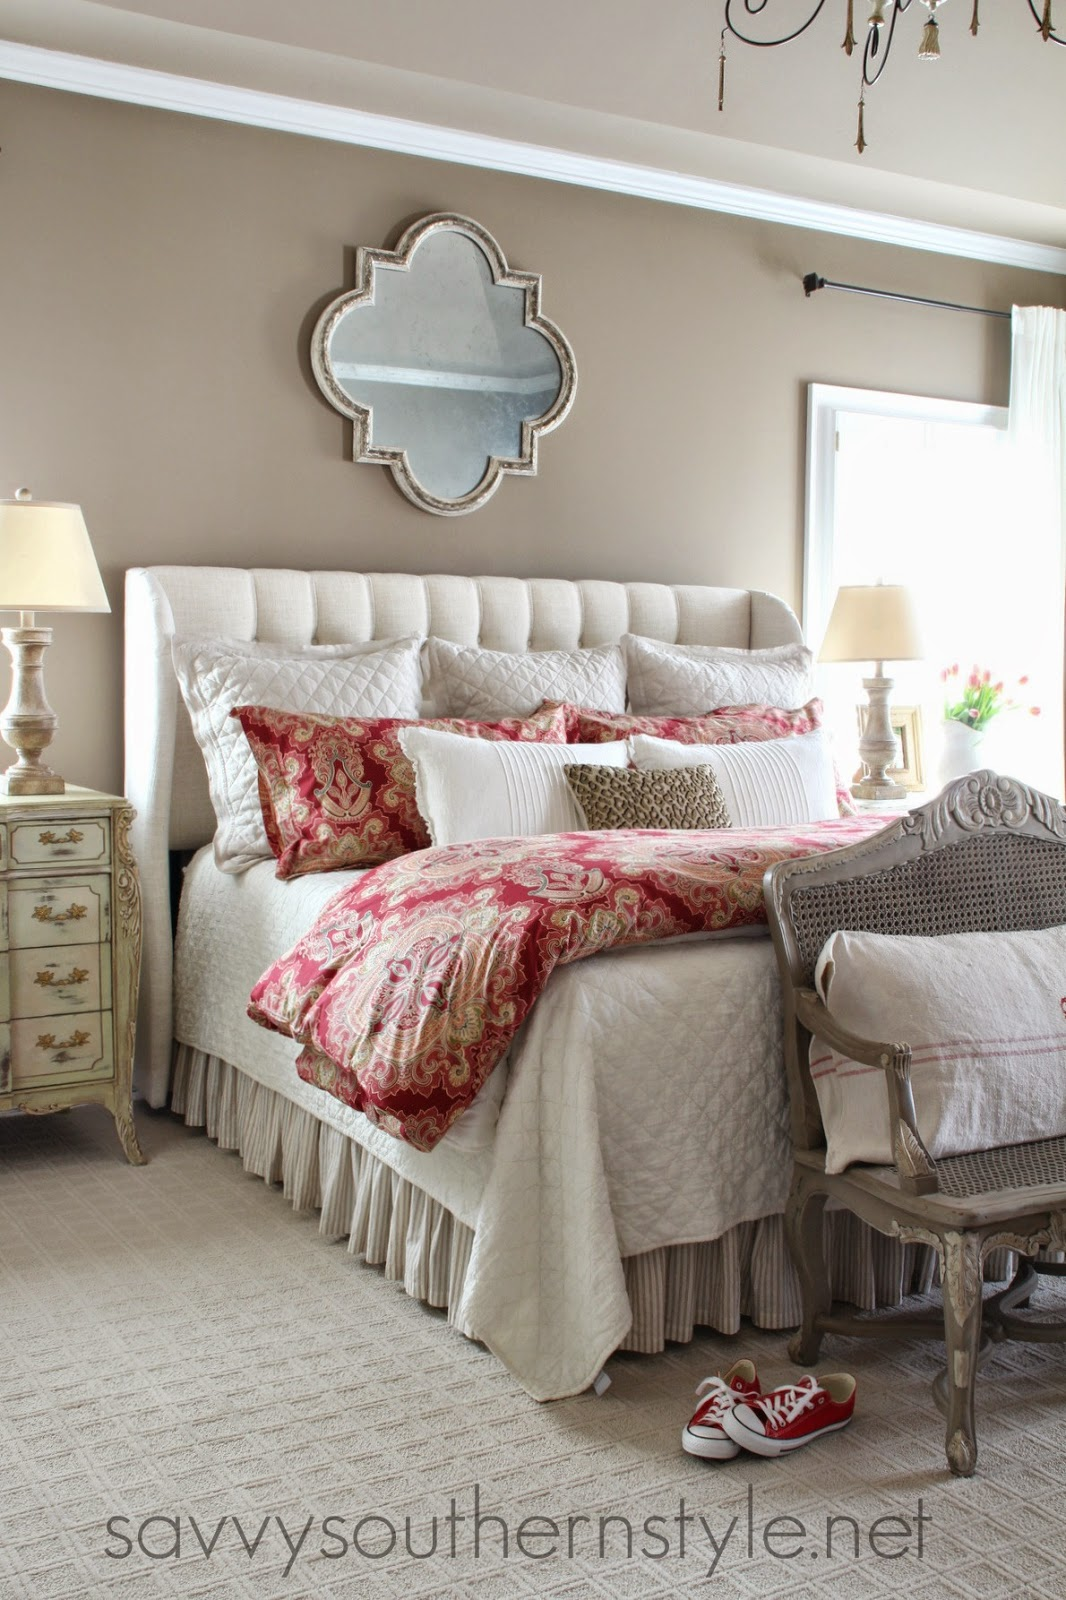 Savvy southern style my home 39 s paint colors Master bedroom with red bedding